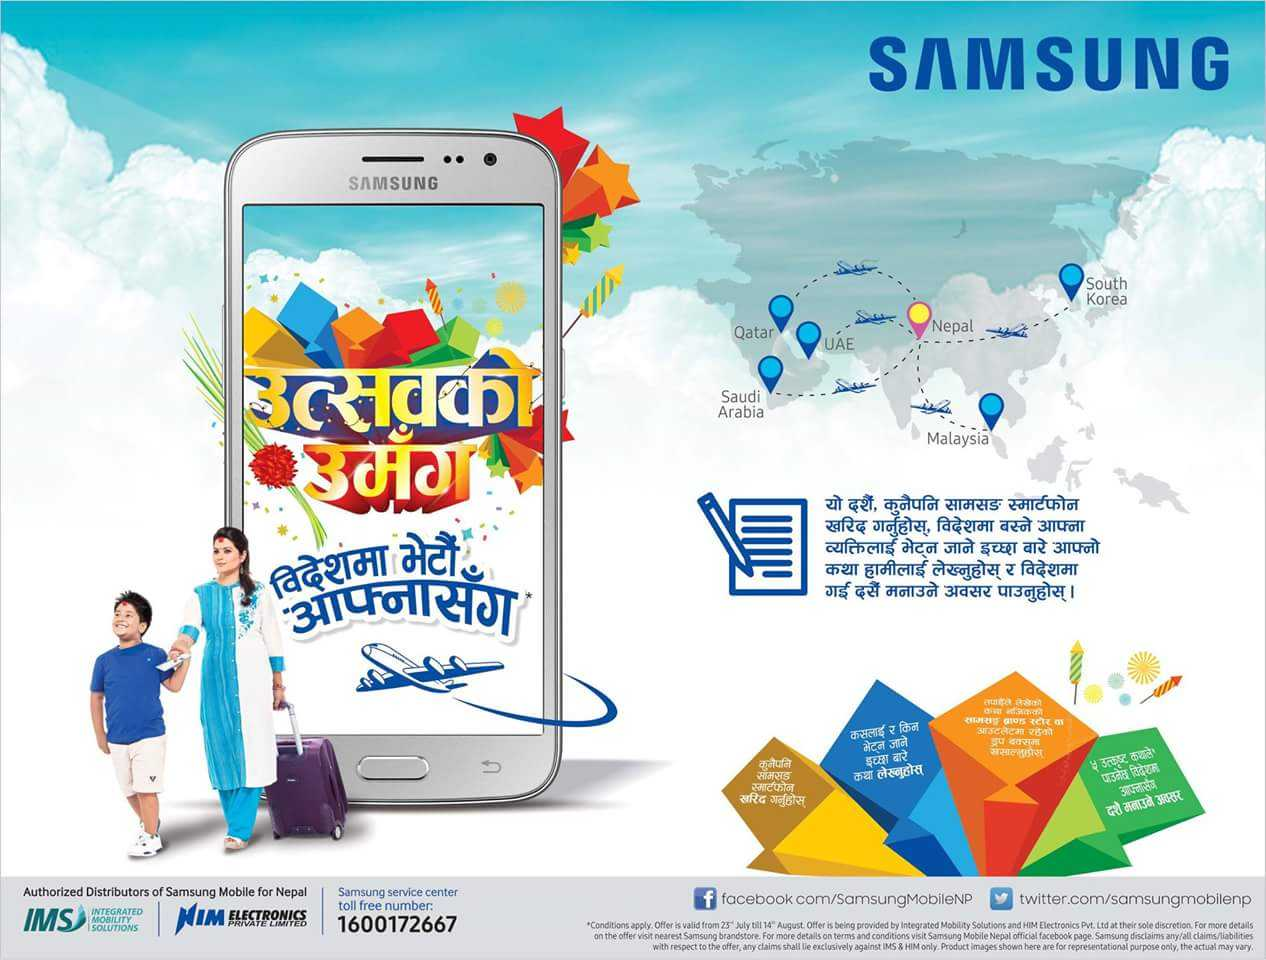 samsung dashain offer